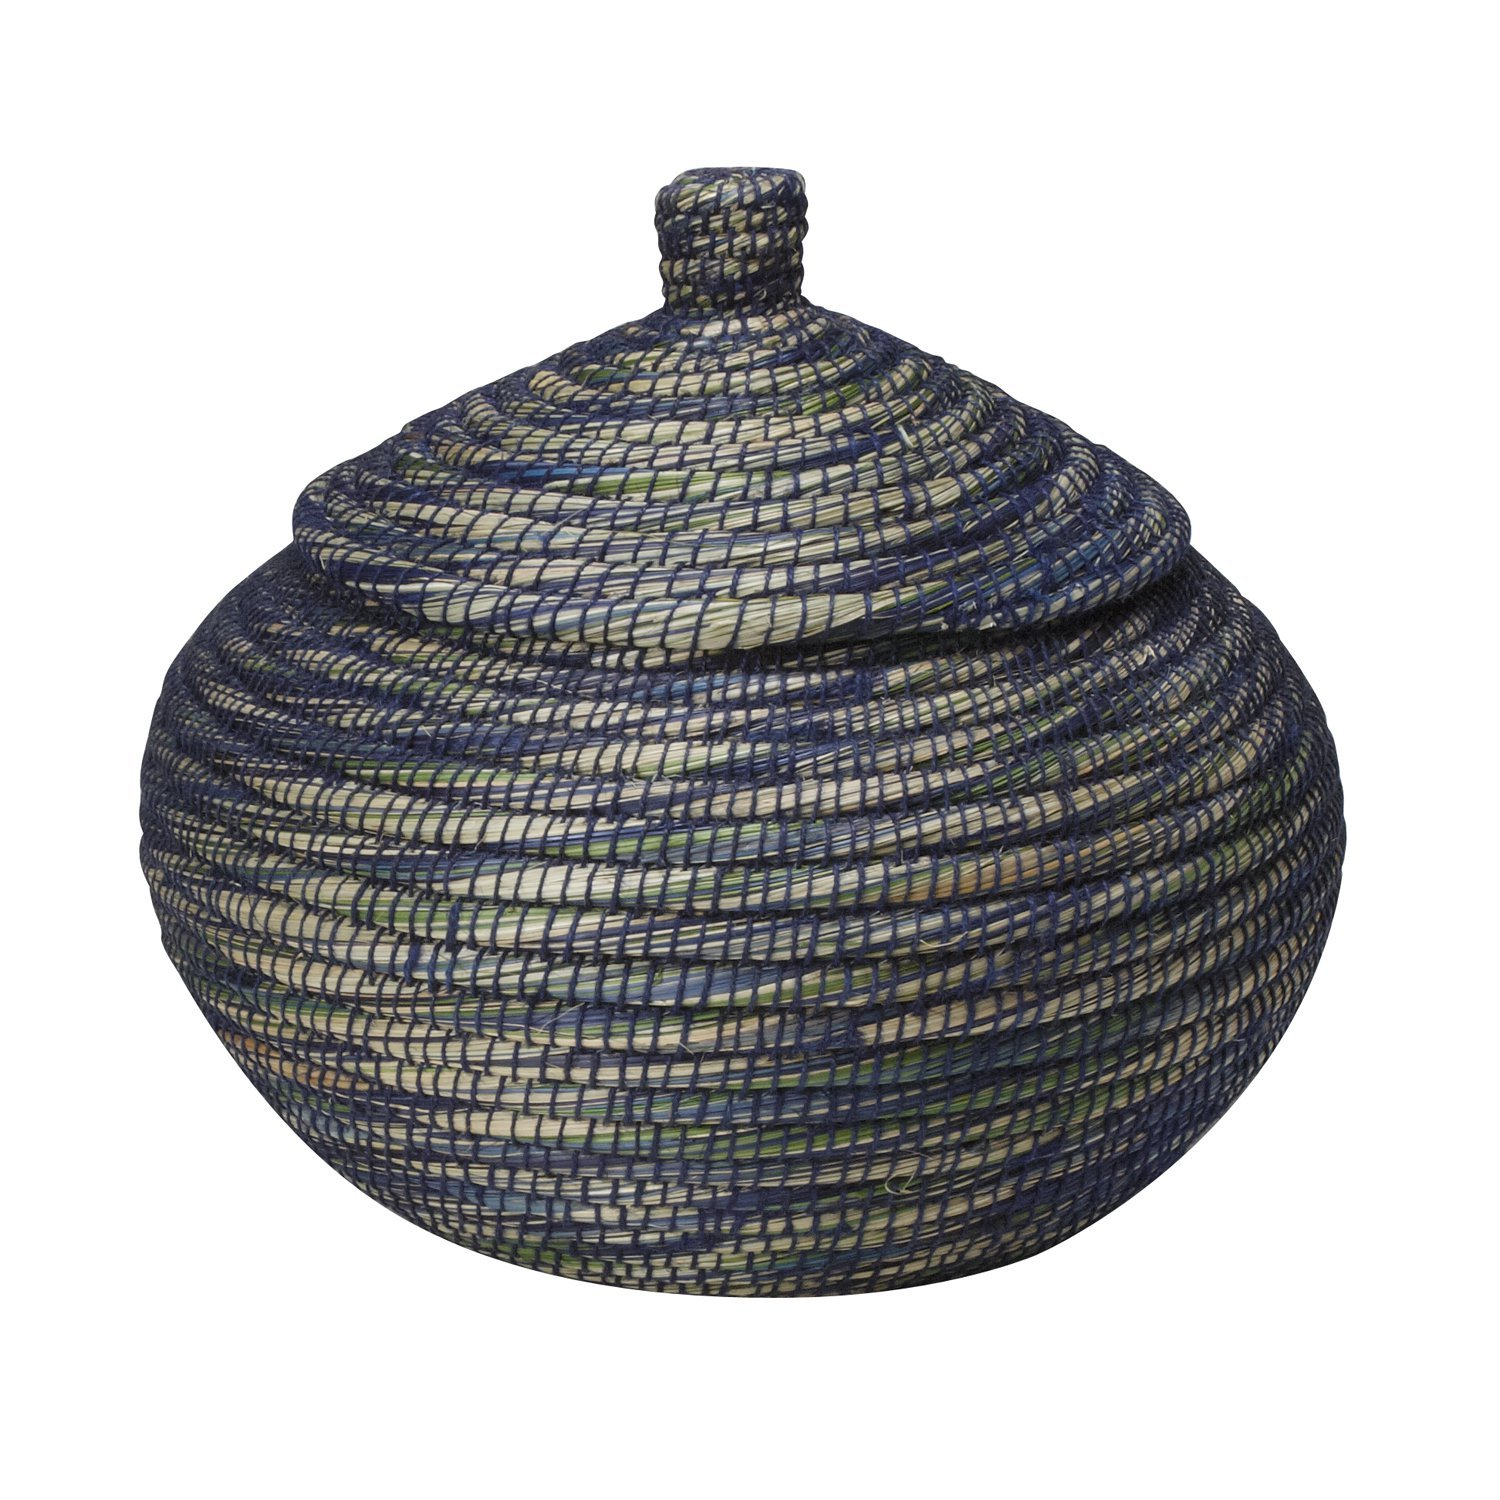 Ten Thousand Villages Large Woven Kaisa Grass Basket With Lid 'Blue Ribbon Bogra Basket'